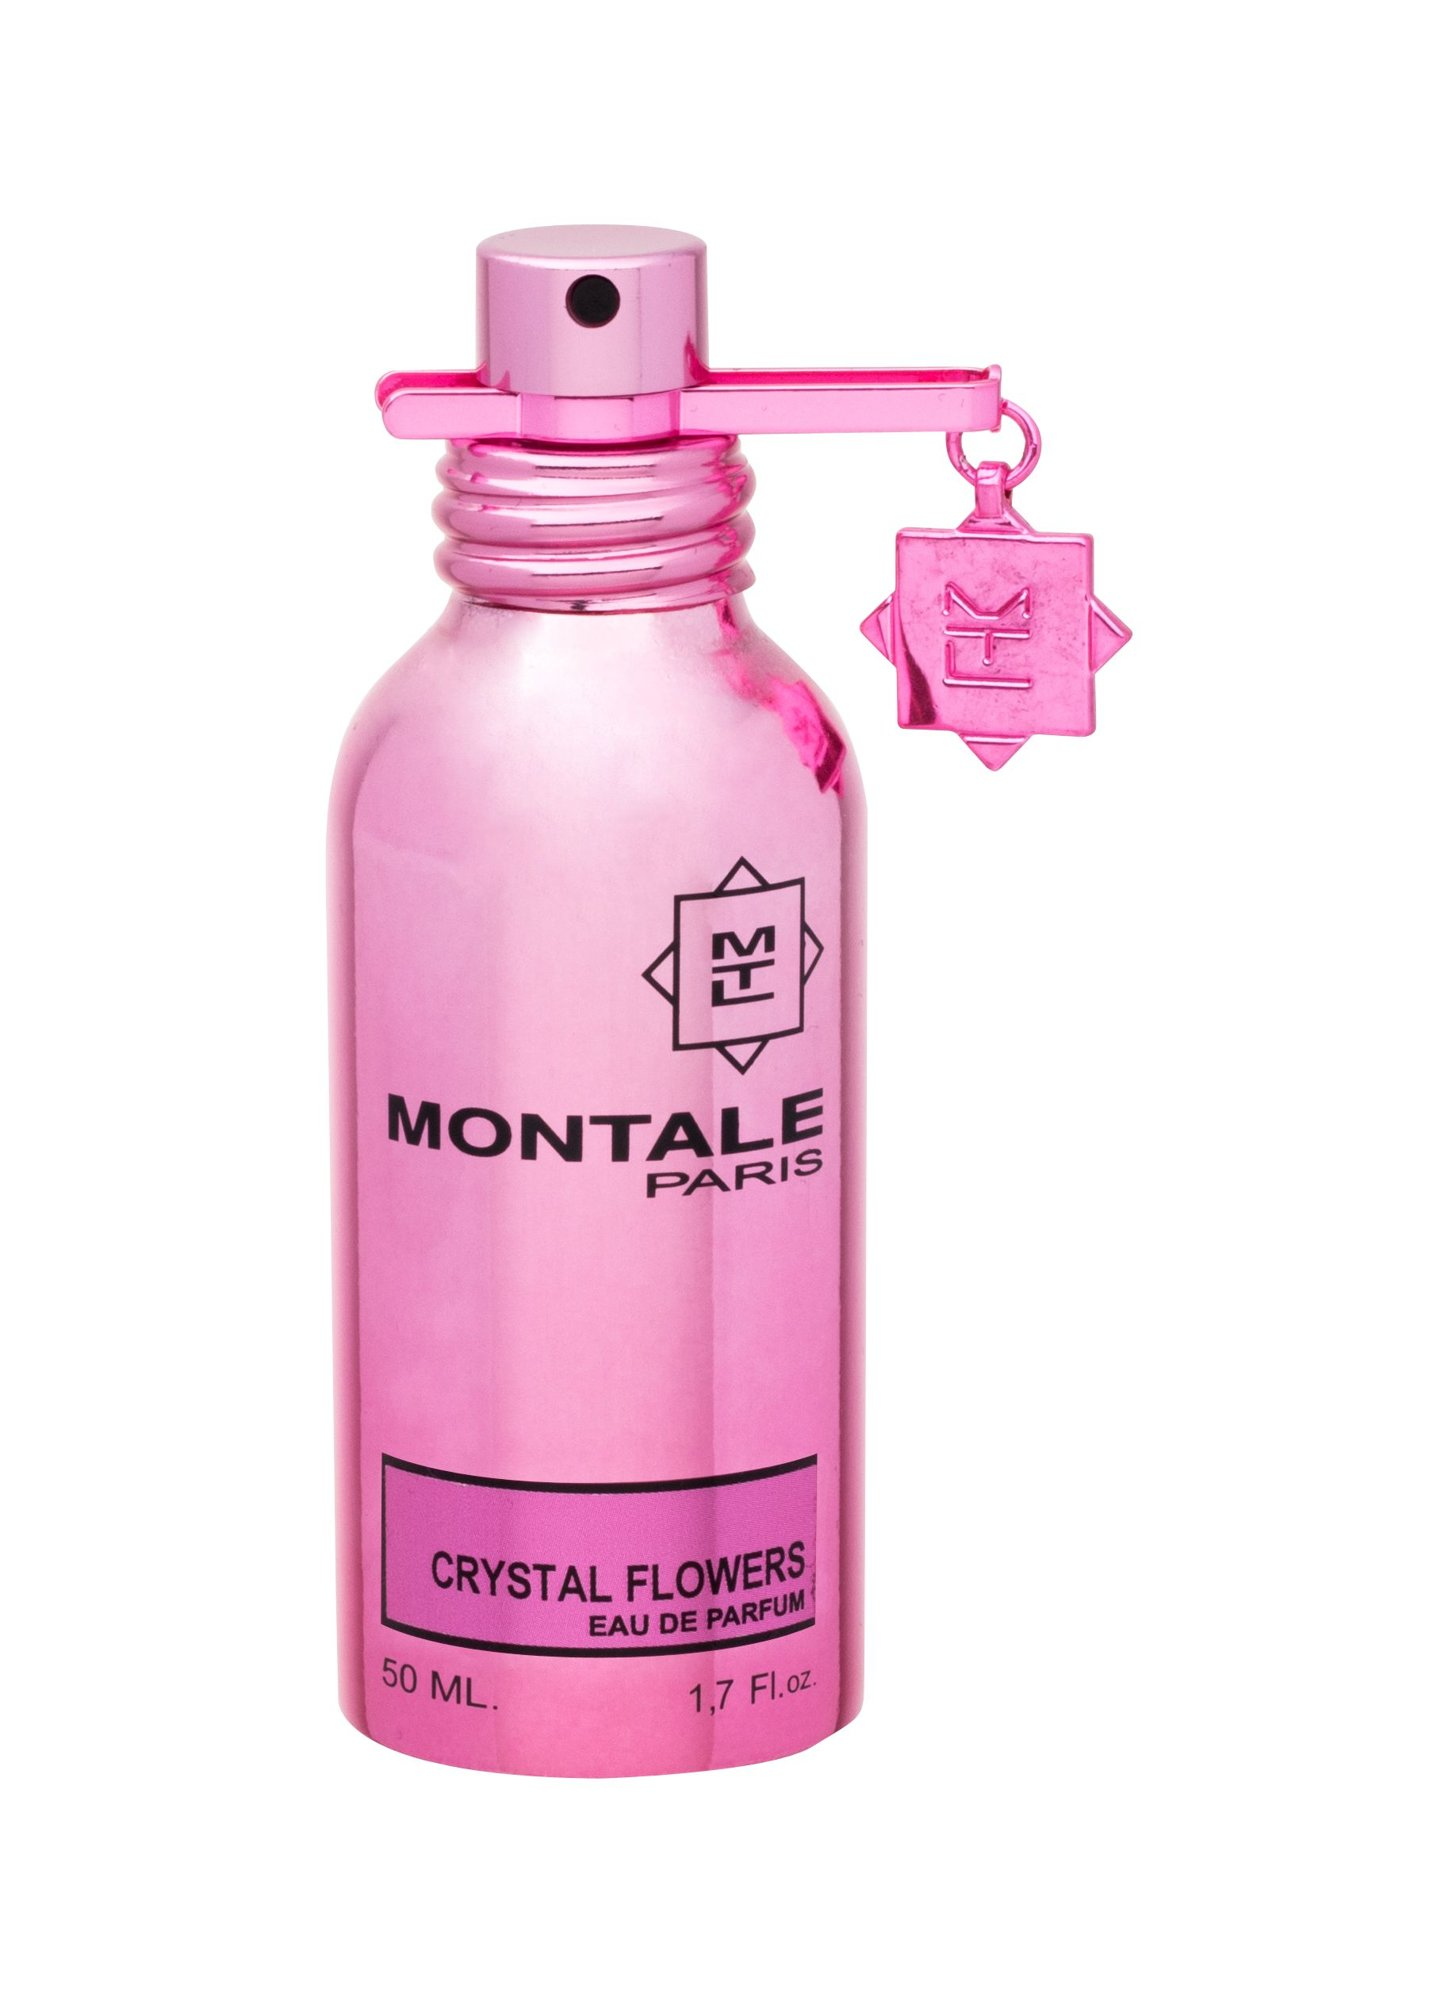 Montale Paris Crystal Flowers EDP 50ml